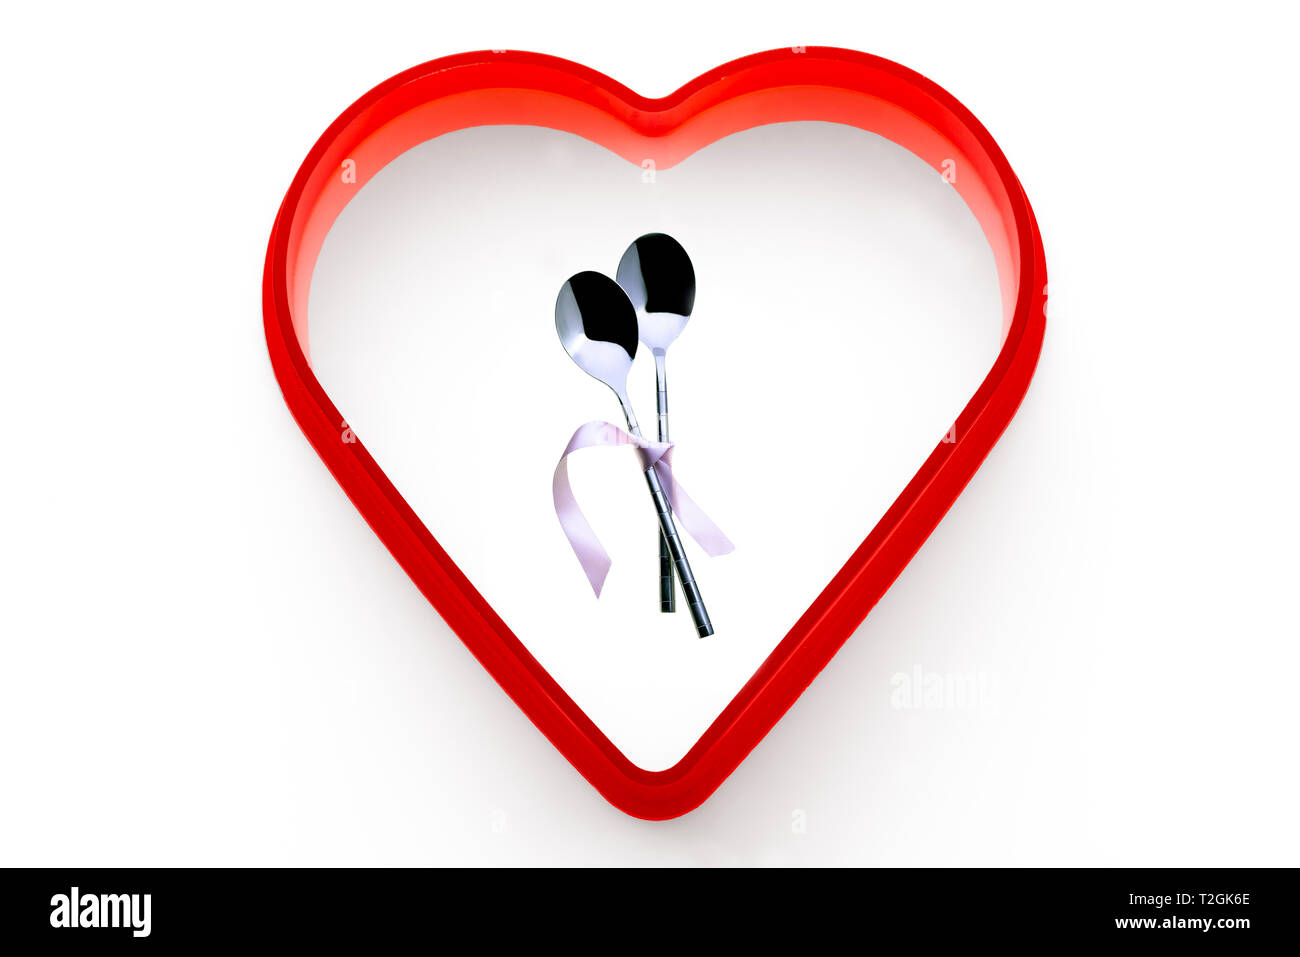 Two spoons tied together with pink ribbon.On a white background, surrounded by a red heart. - Stock Image